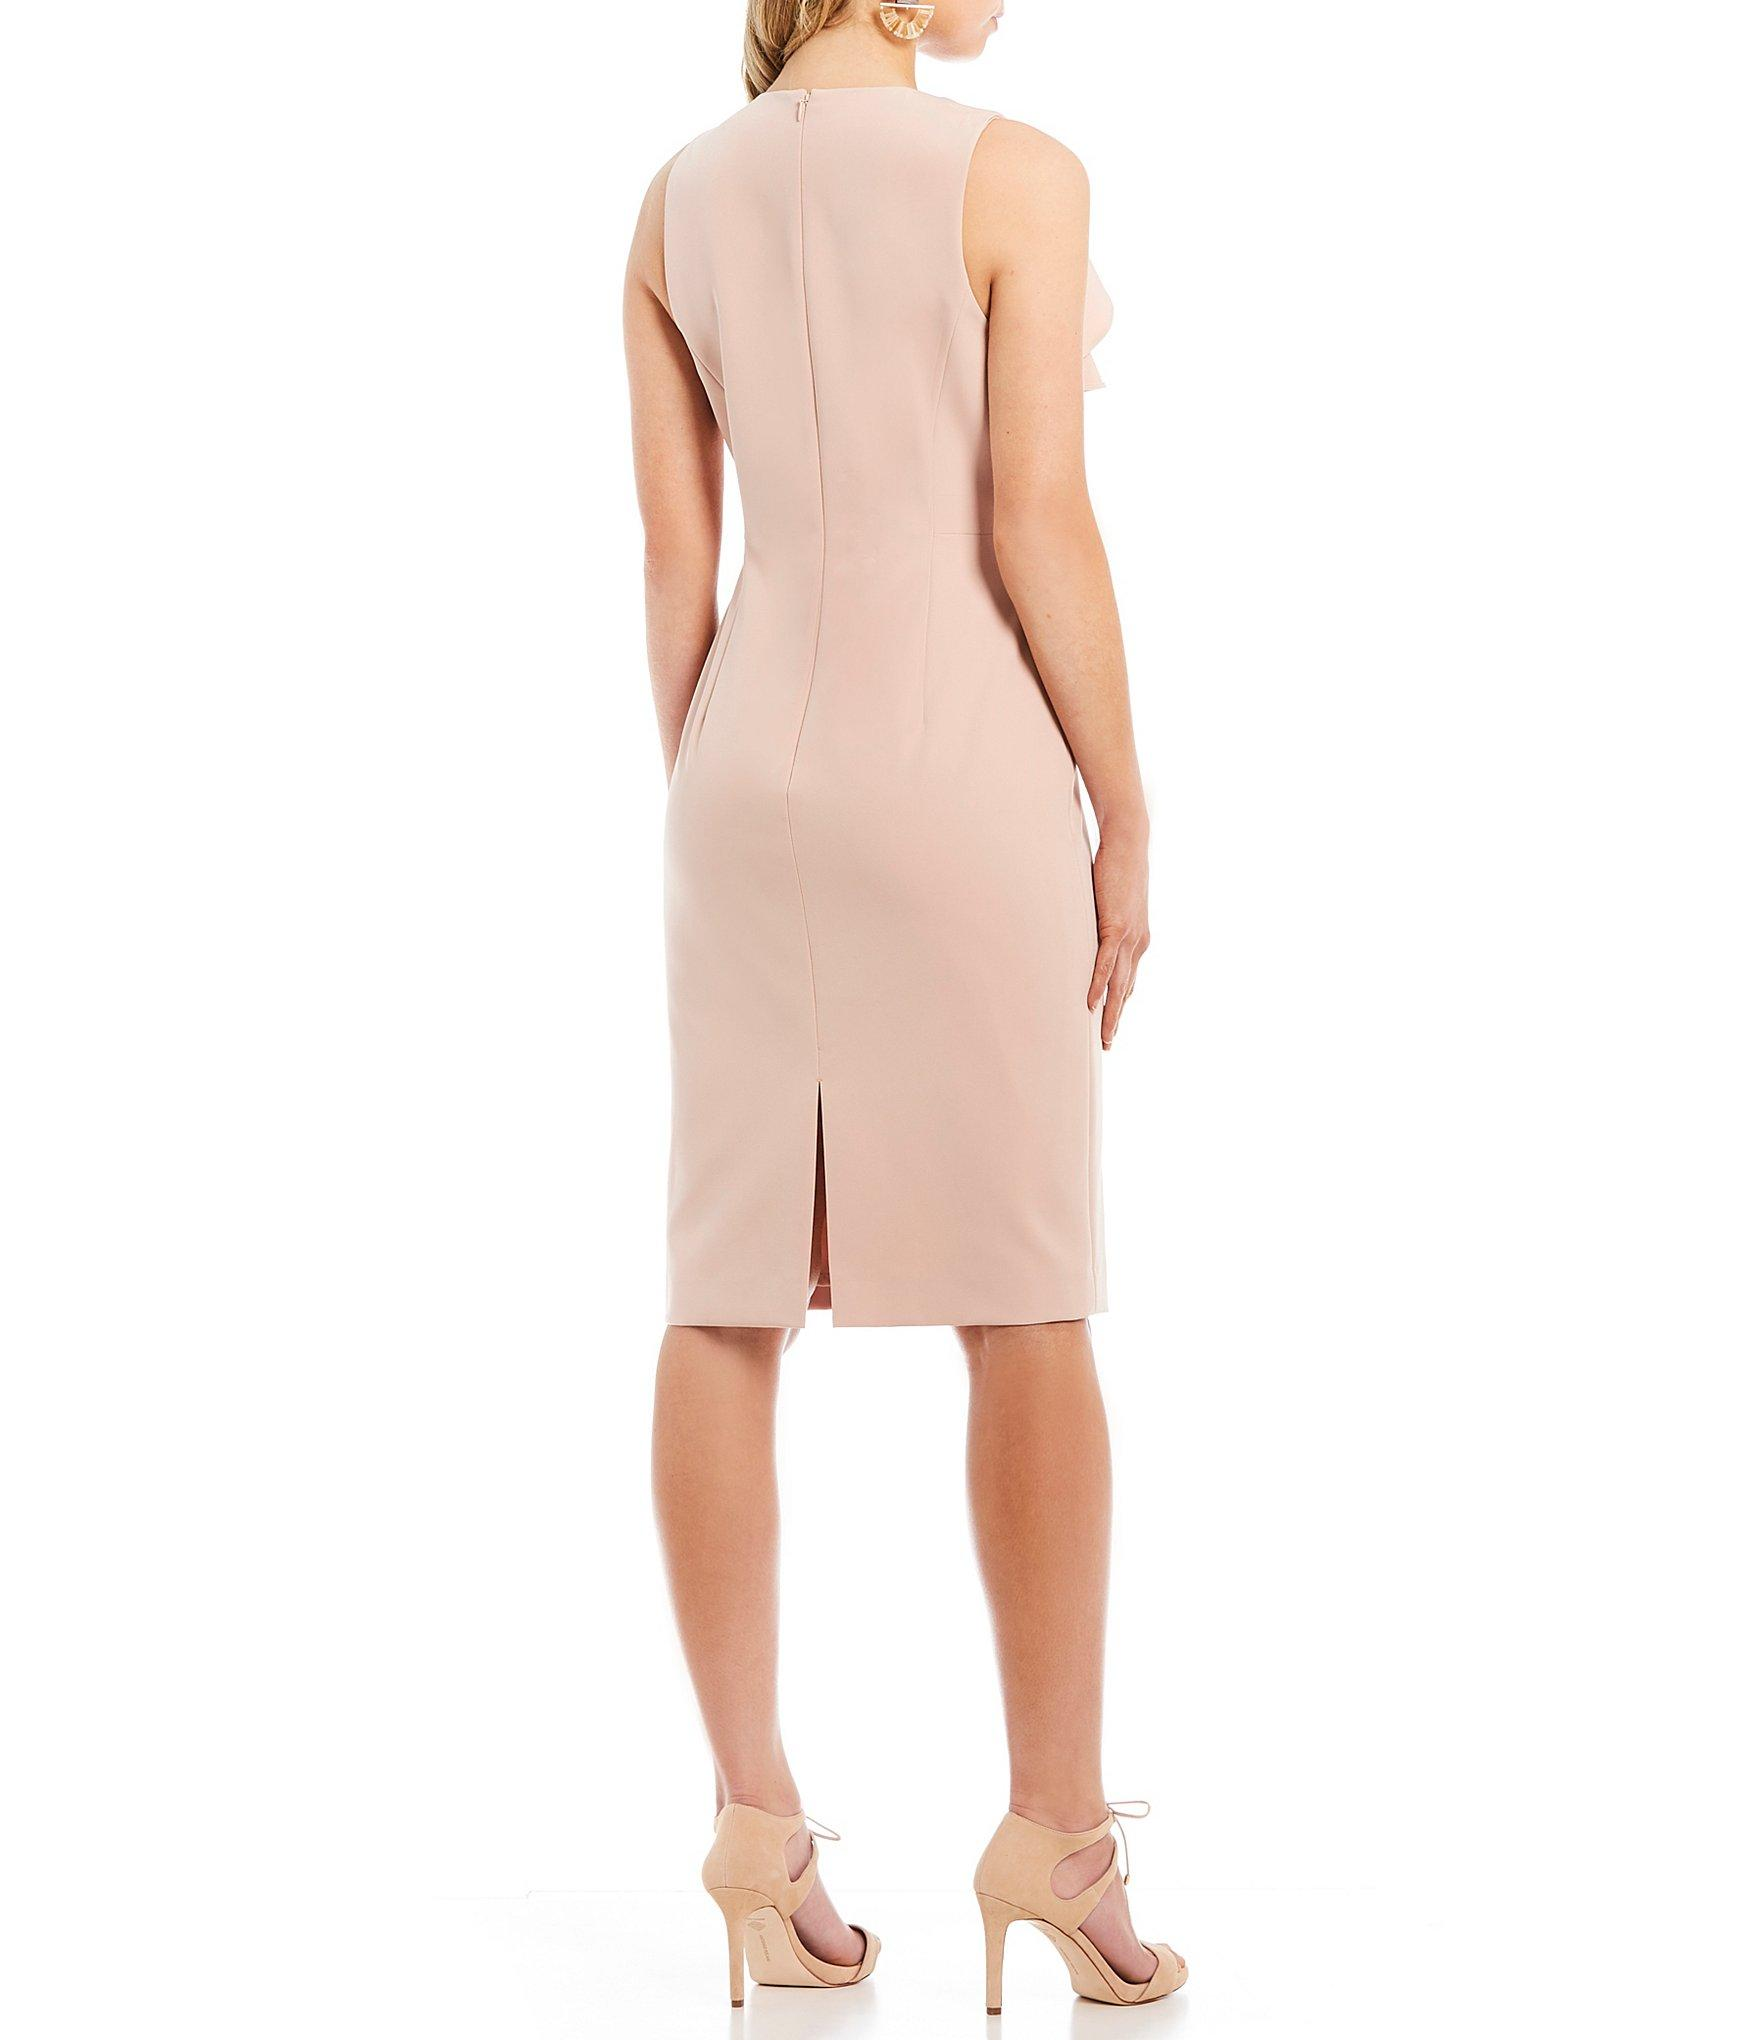 0d69e8da7a9 Antonio Melani - Pink Dean Ruffle Sheath Dress - Lyst. View fullscreen